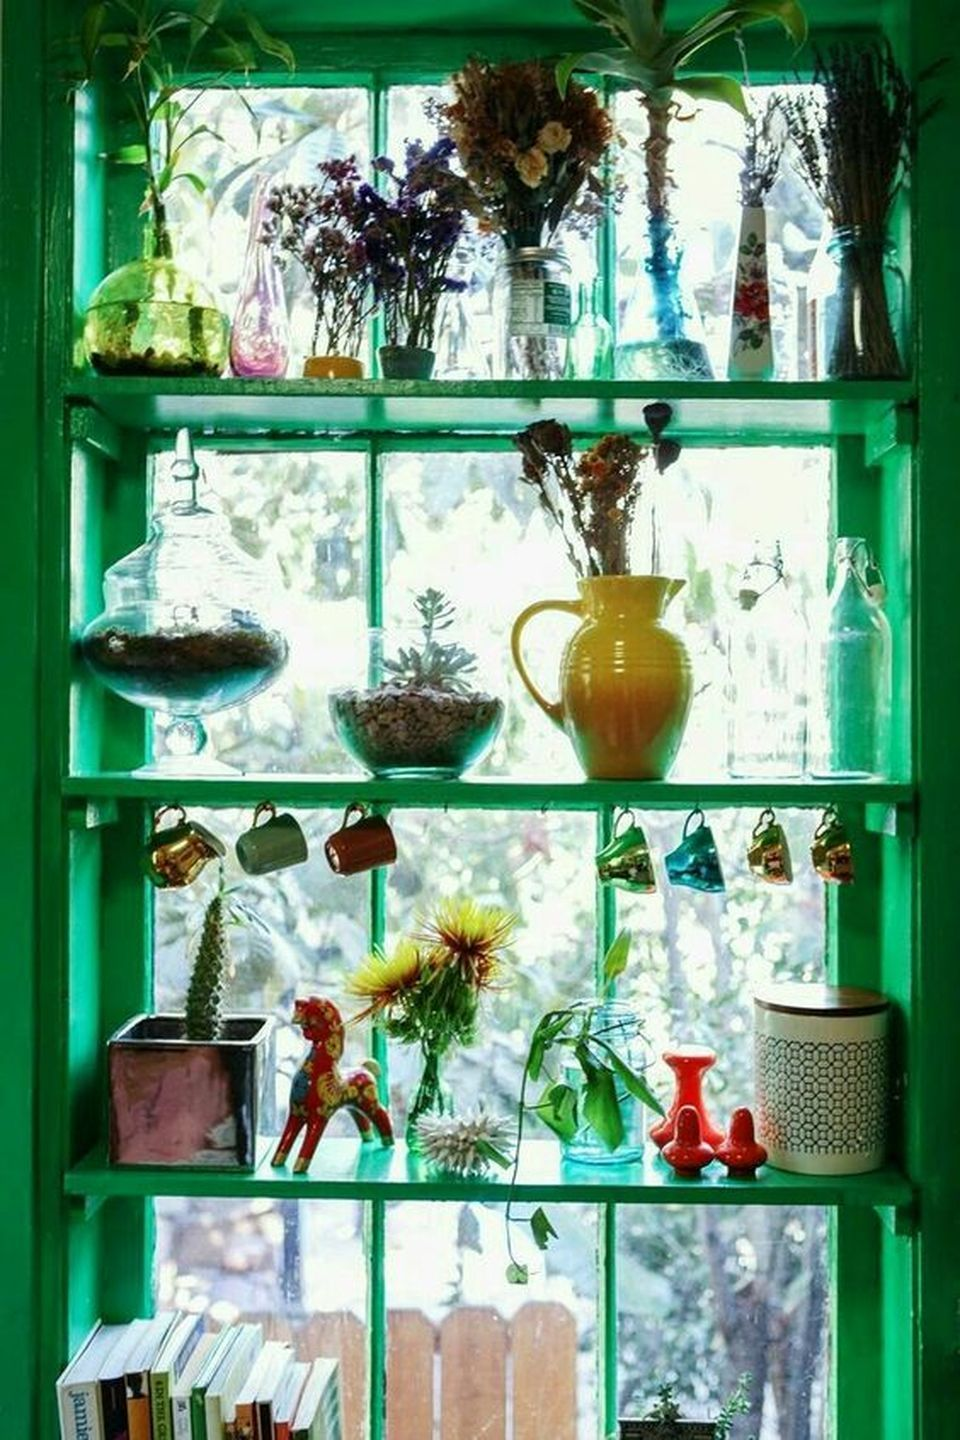 Window shelf decor  rustic bohemian kitchen decorations ideas   lovely ideas